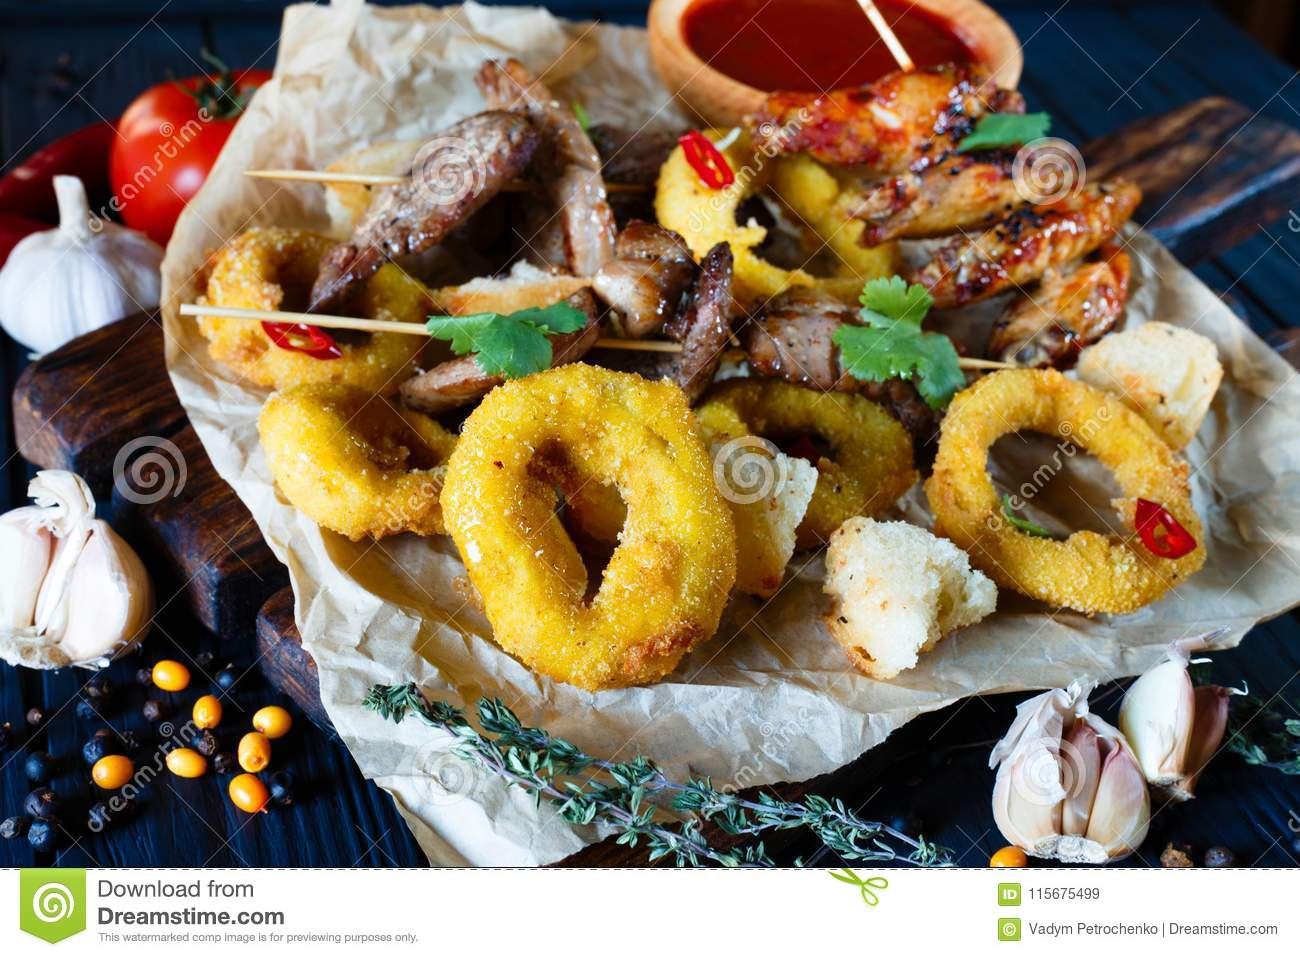 Deco Snack Grilled Meats Assortment Onion Rings In Breadcrumbs Rusks Deco